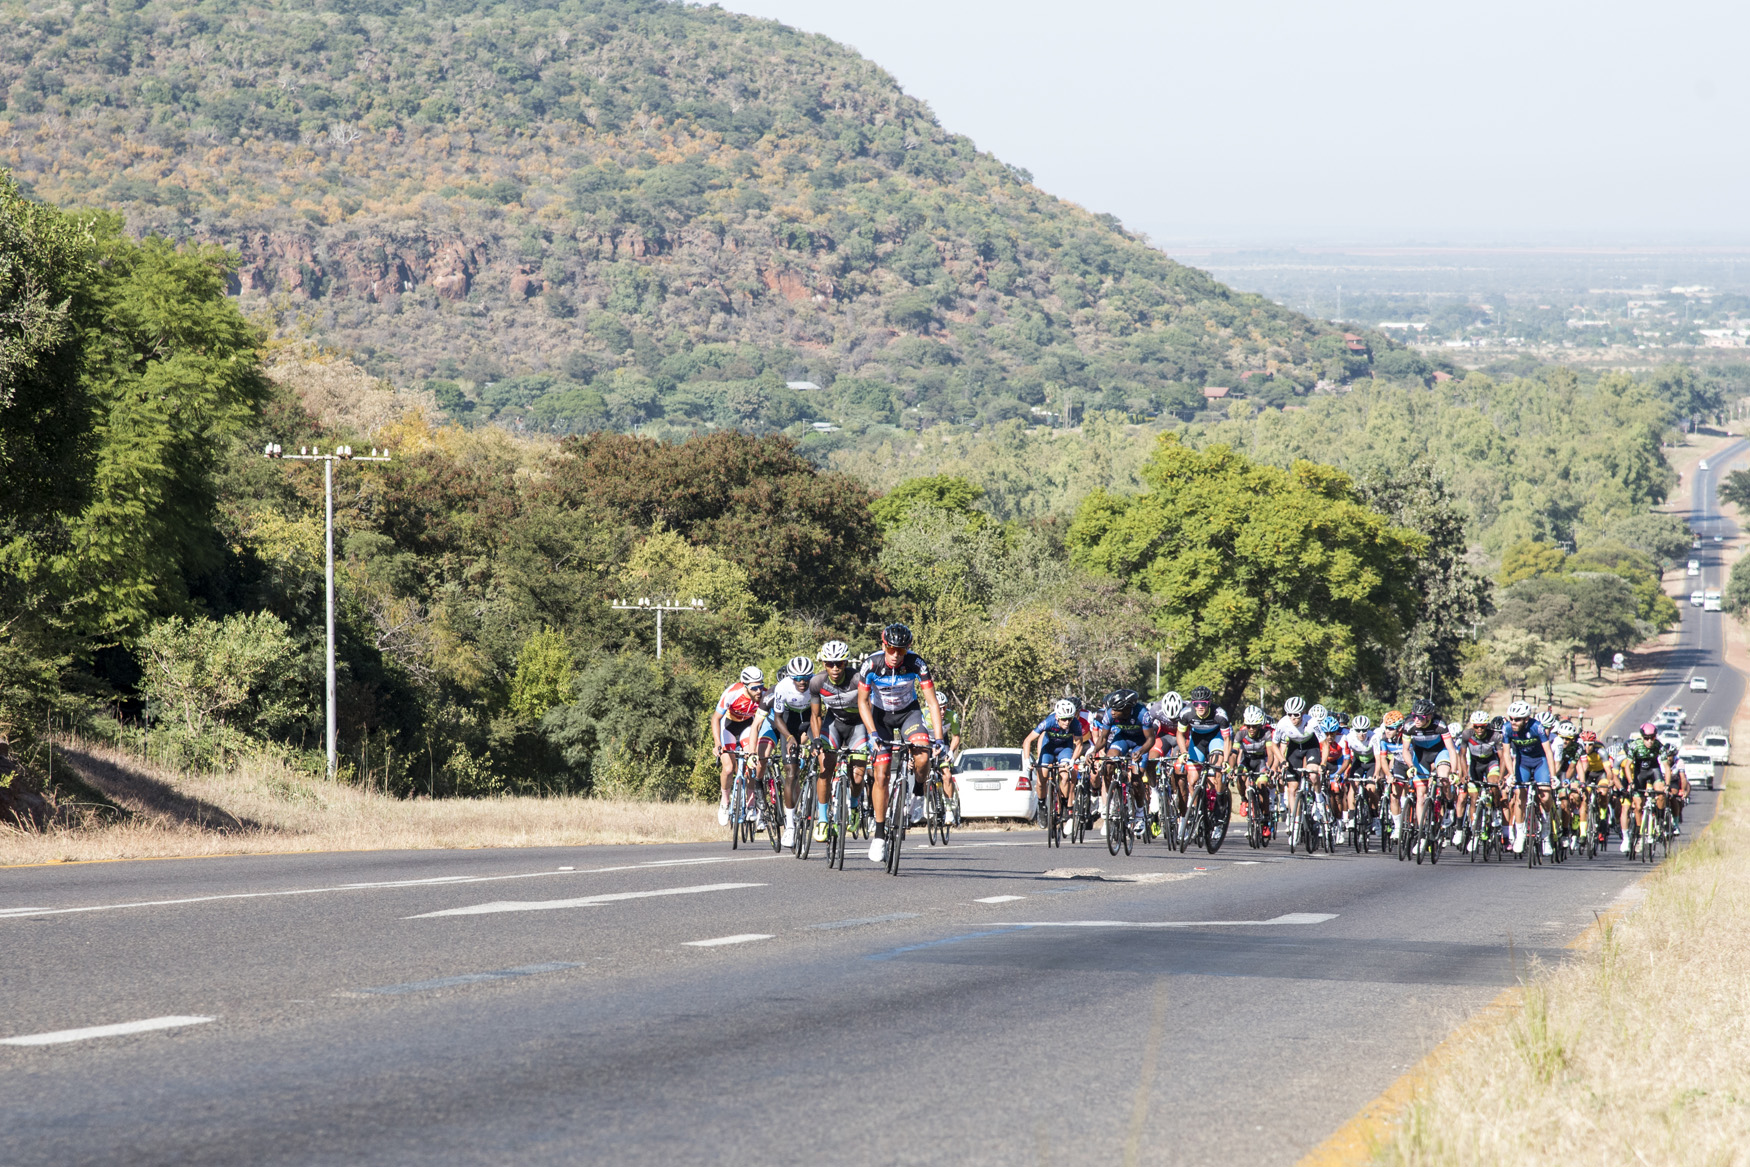 Soon after the neutral zone on the outskirts of Bela Bela, the first attacks began early in the day from Bela Bela to Polokwane on Stage 1 of the 2019 Tour de Limpopo (UCI 2.2) from 14-18 May © Tour de Limpopo/Andrew Mc Fadden